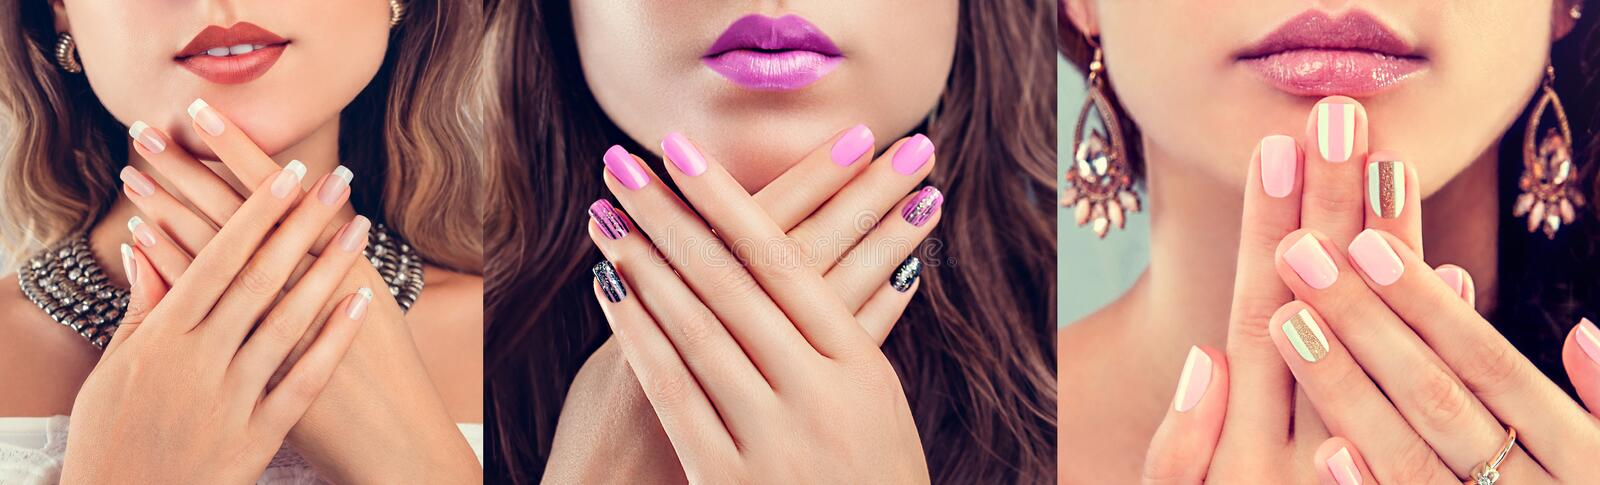 Nail art and design. Beauty fashion model with different make-up and manicure wearing jewelry. Set of nude looks. Nail art and design. Beauty fashion model with stock image